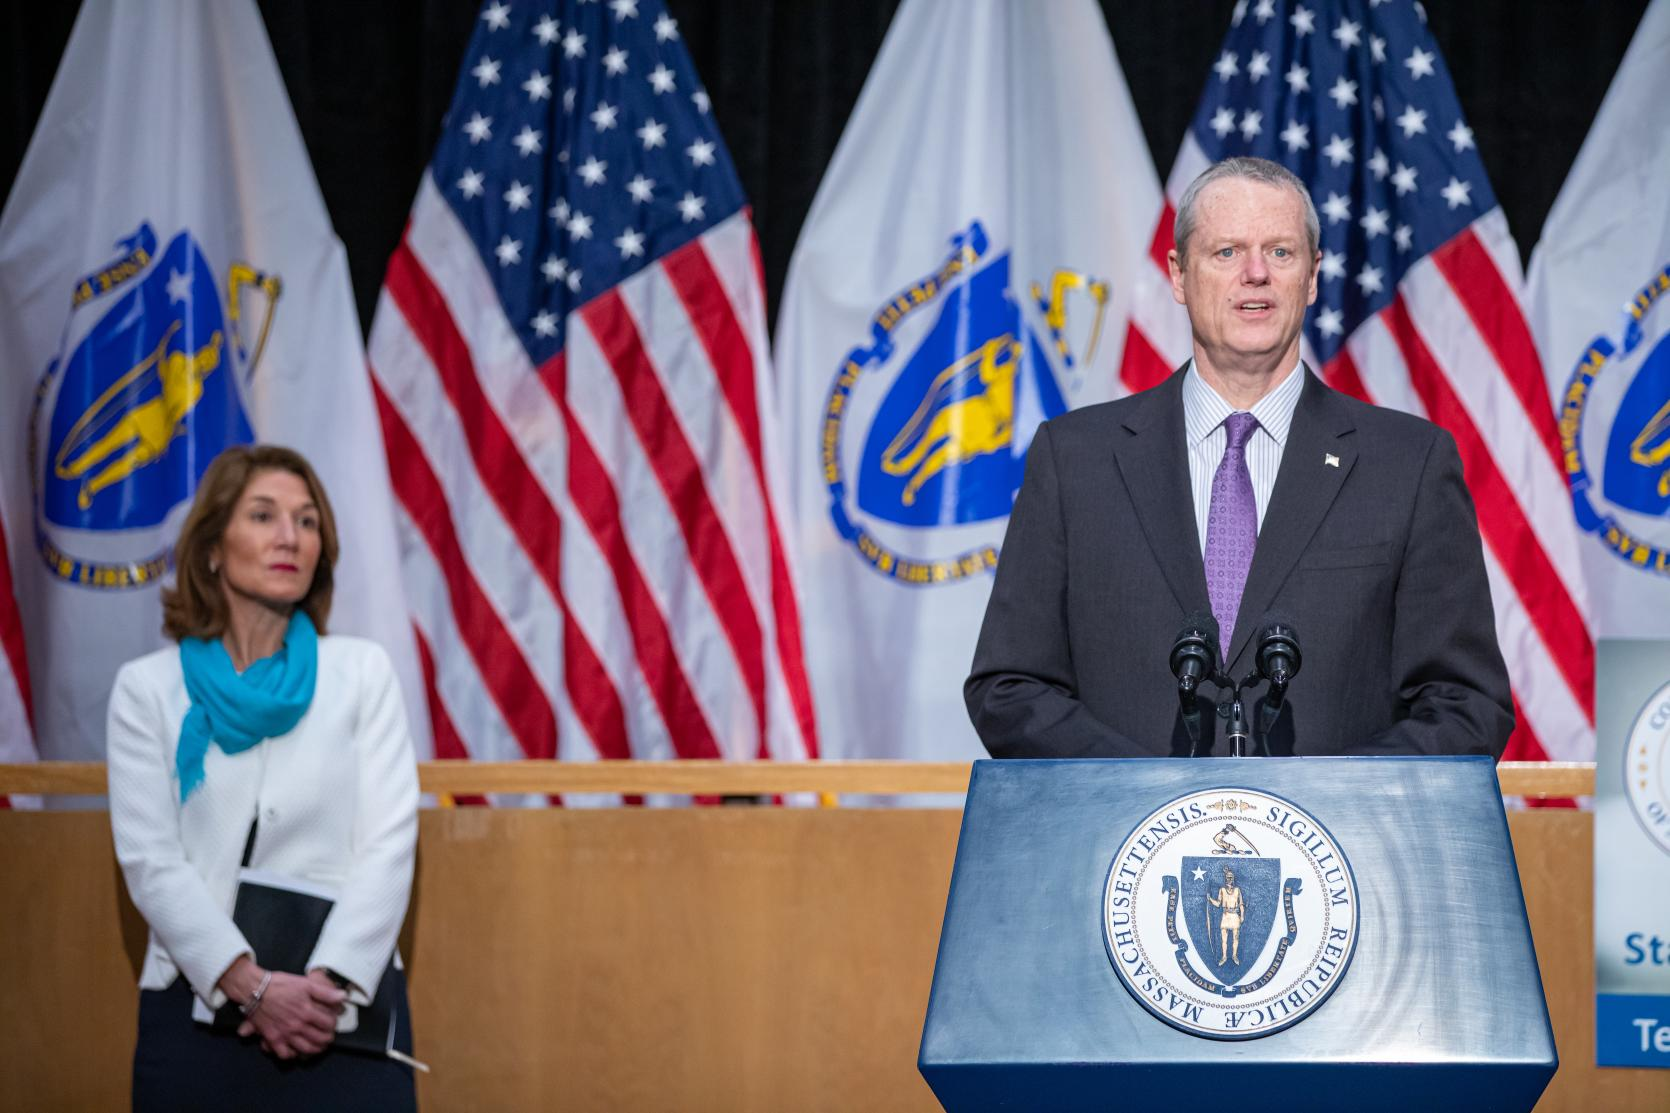 Baker-Polito Administration Announces Increased Resources For Health Care Providers, Expanded Support For Long-Term Care Facilities, COVID-19 Testing Initiatives